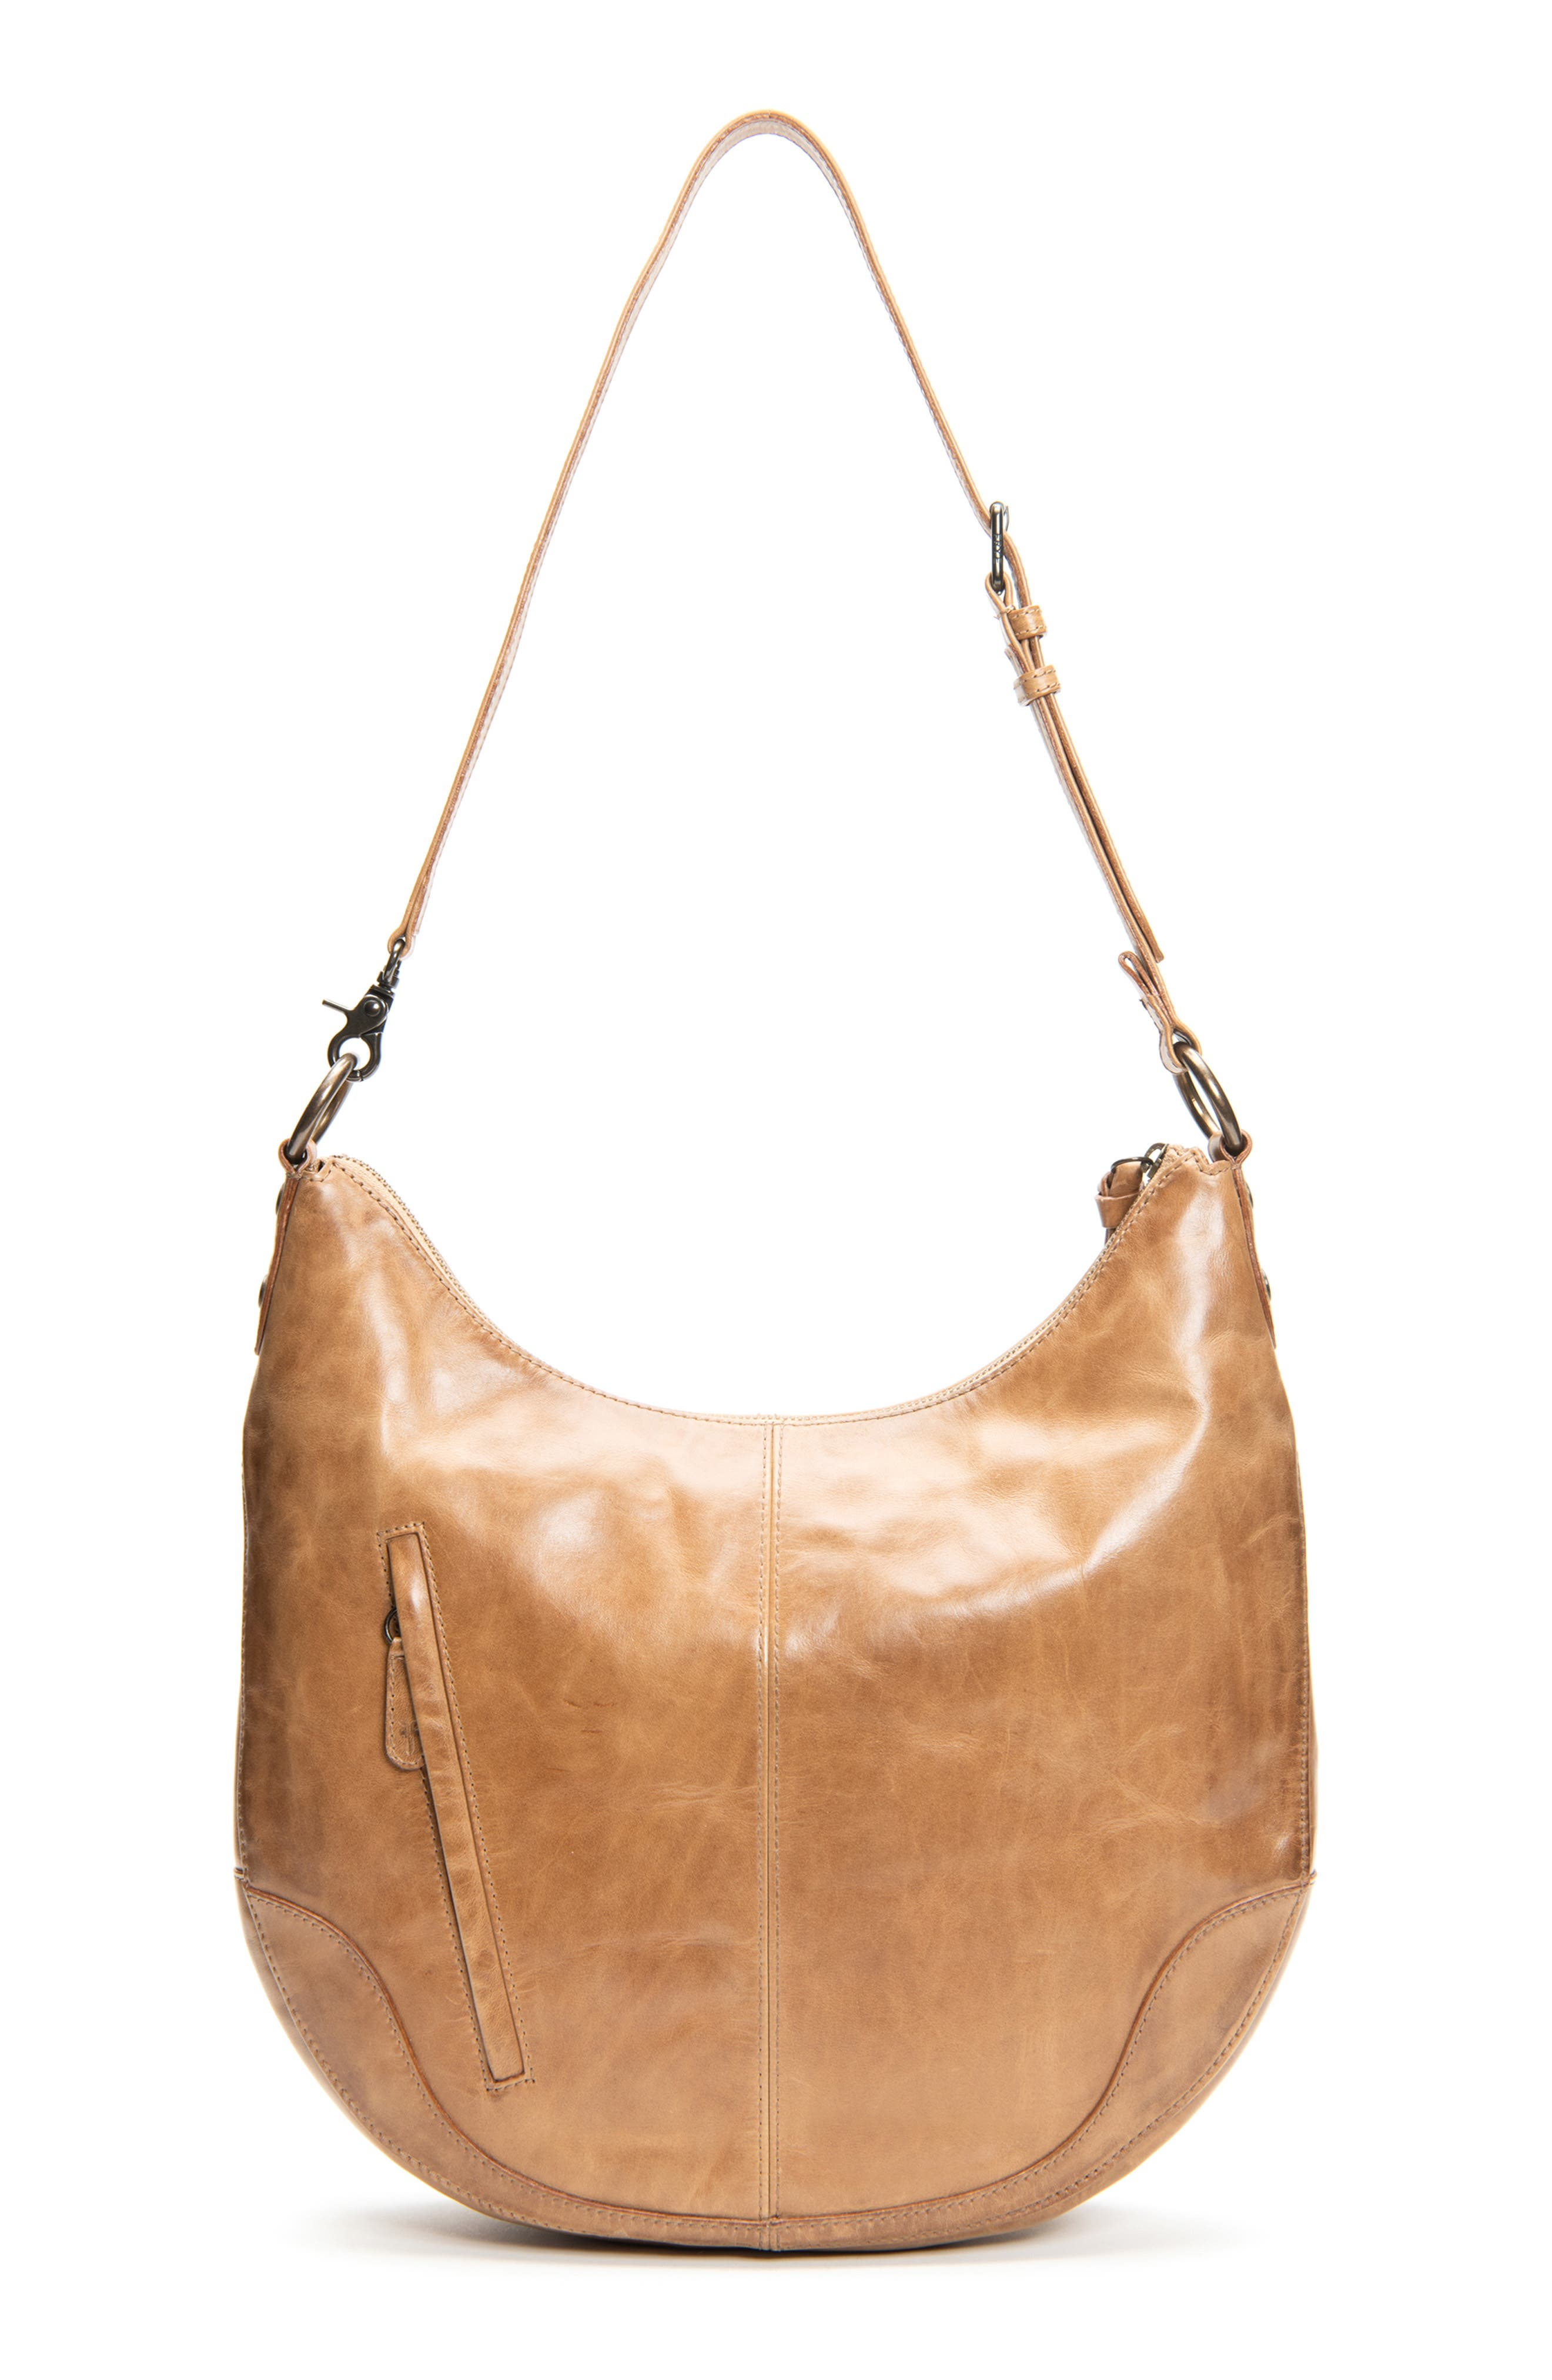 Inspired by Frye\\\'s iconic Melissa boot, this roomy hobo bag in burnished Italian leather features a rounded silhouette that fits comfortably over your shoulder. Style Name: Frye Melissa Leather Hobo. Style Number: 5893440. Available in stores.